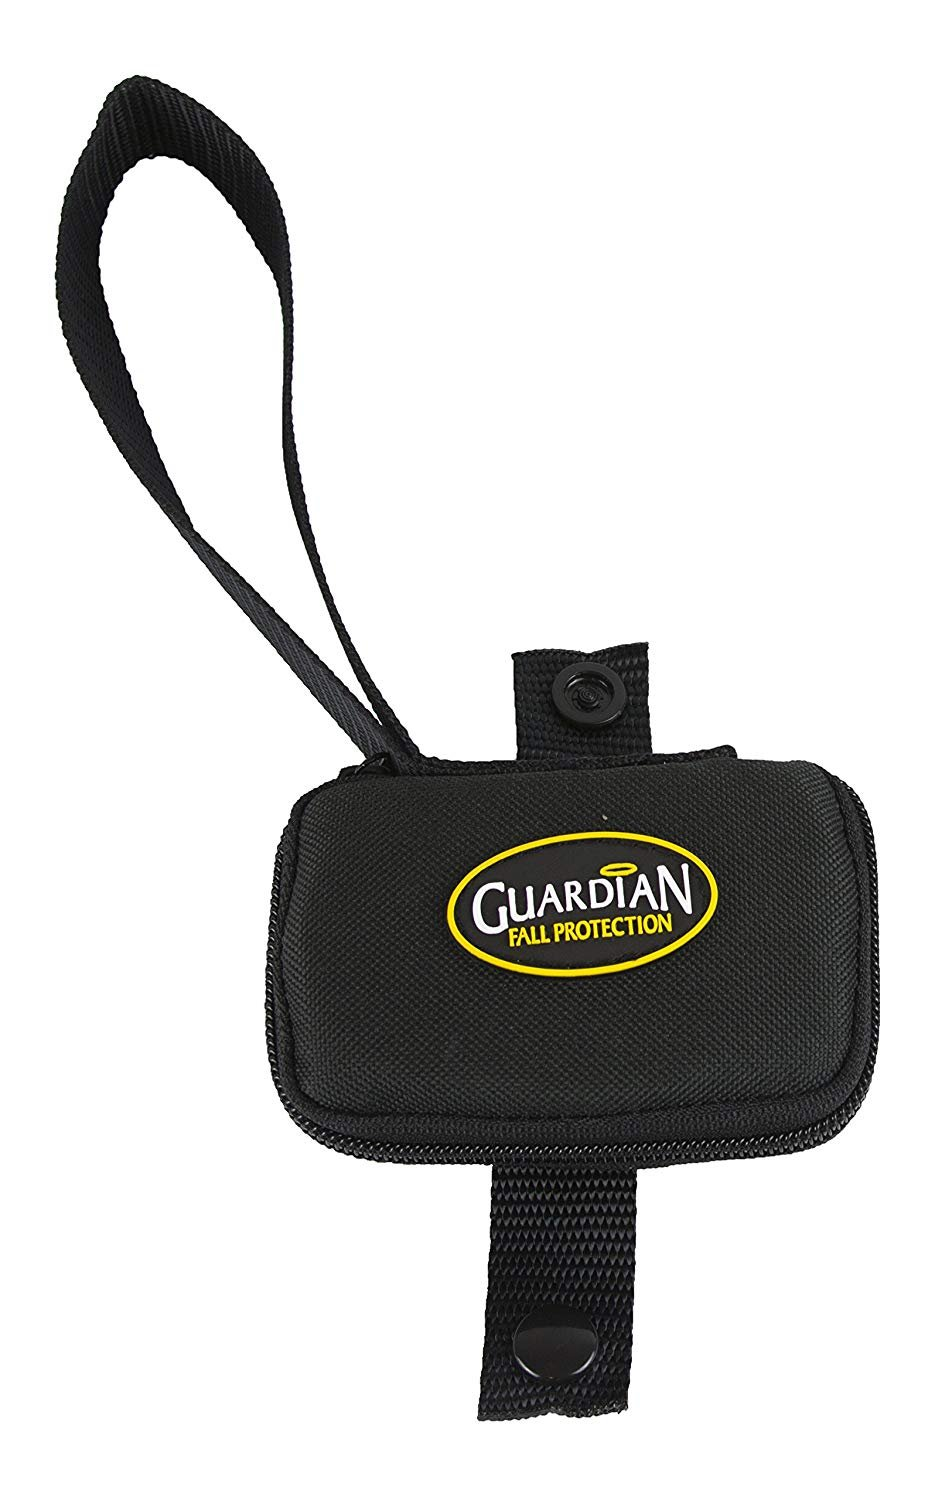 Guardian Fall Protection 10733 Trauma Strap (6 Pack)